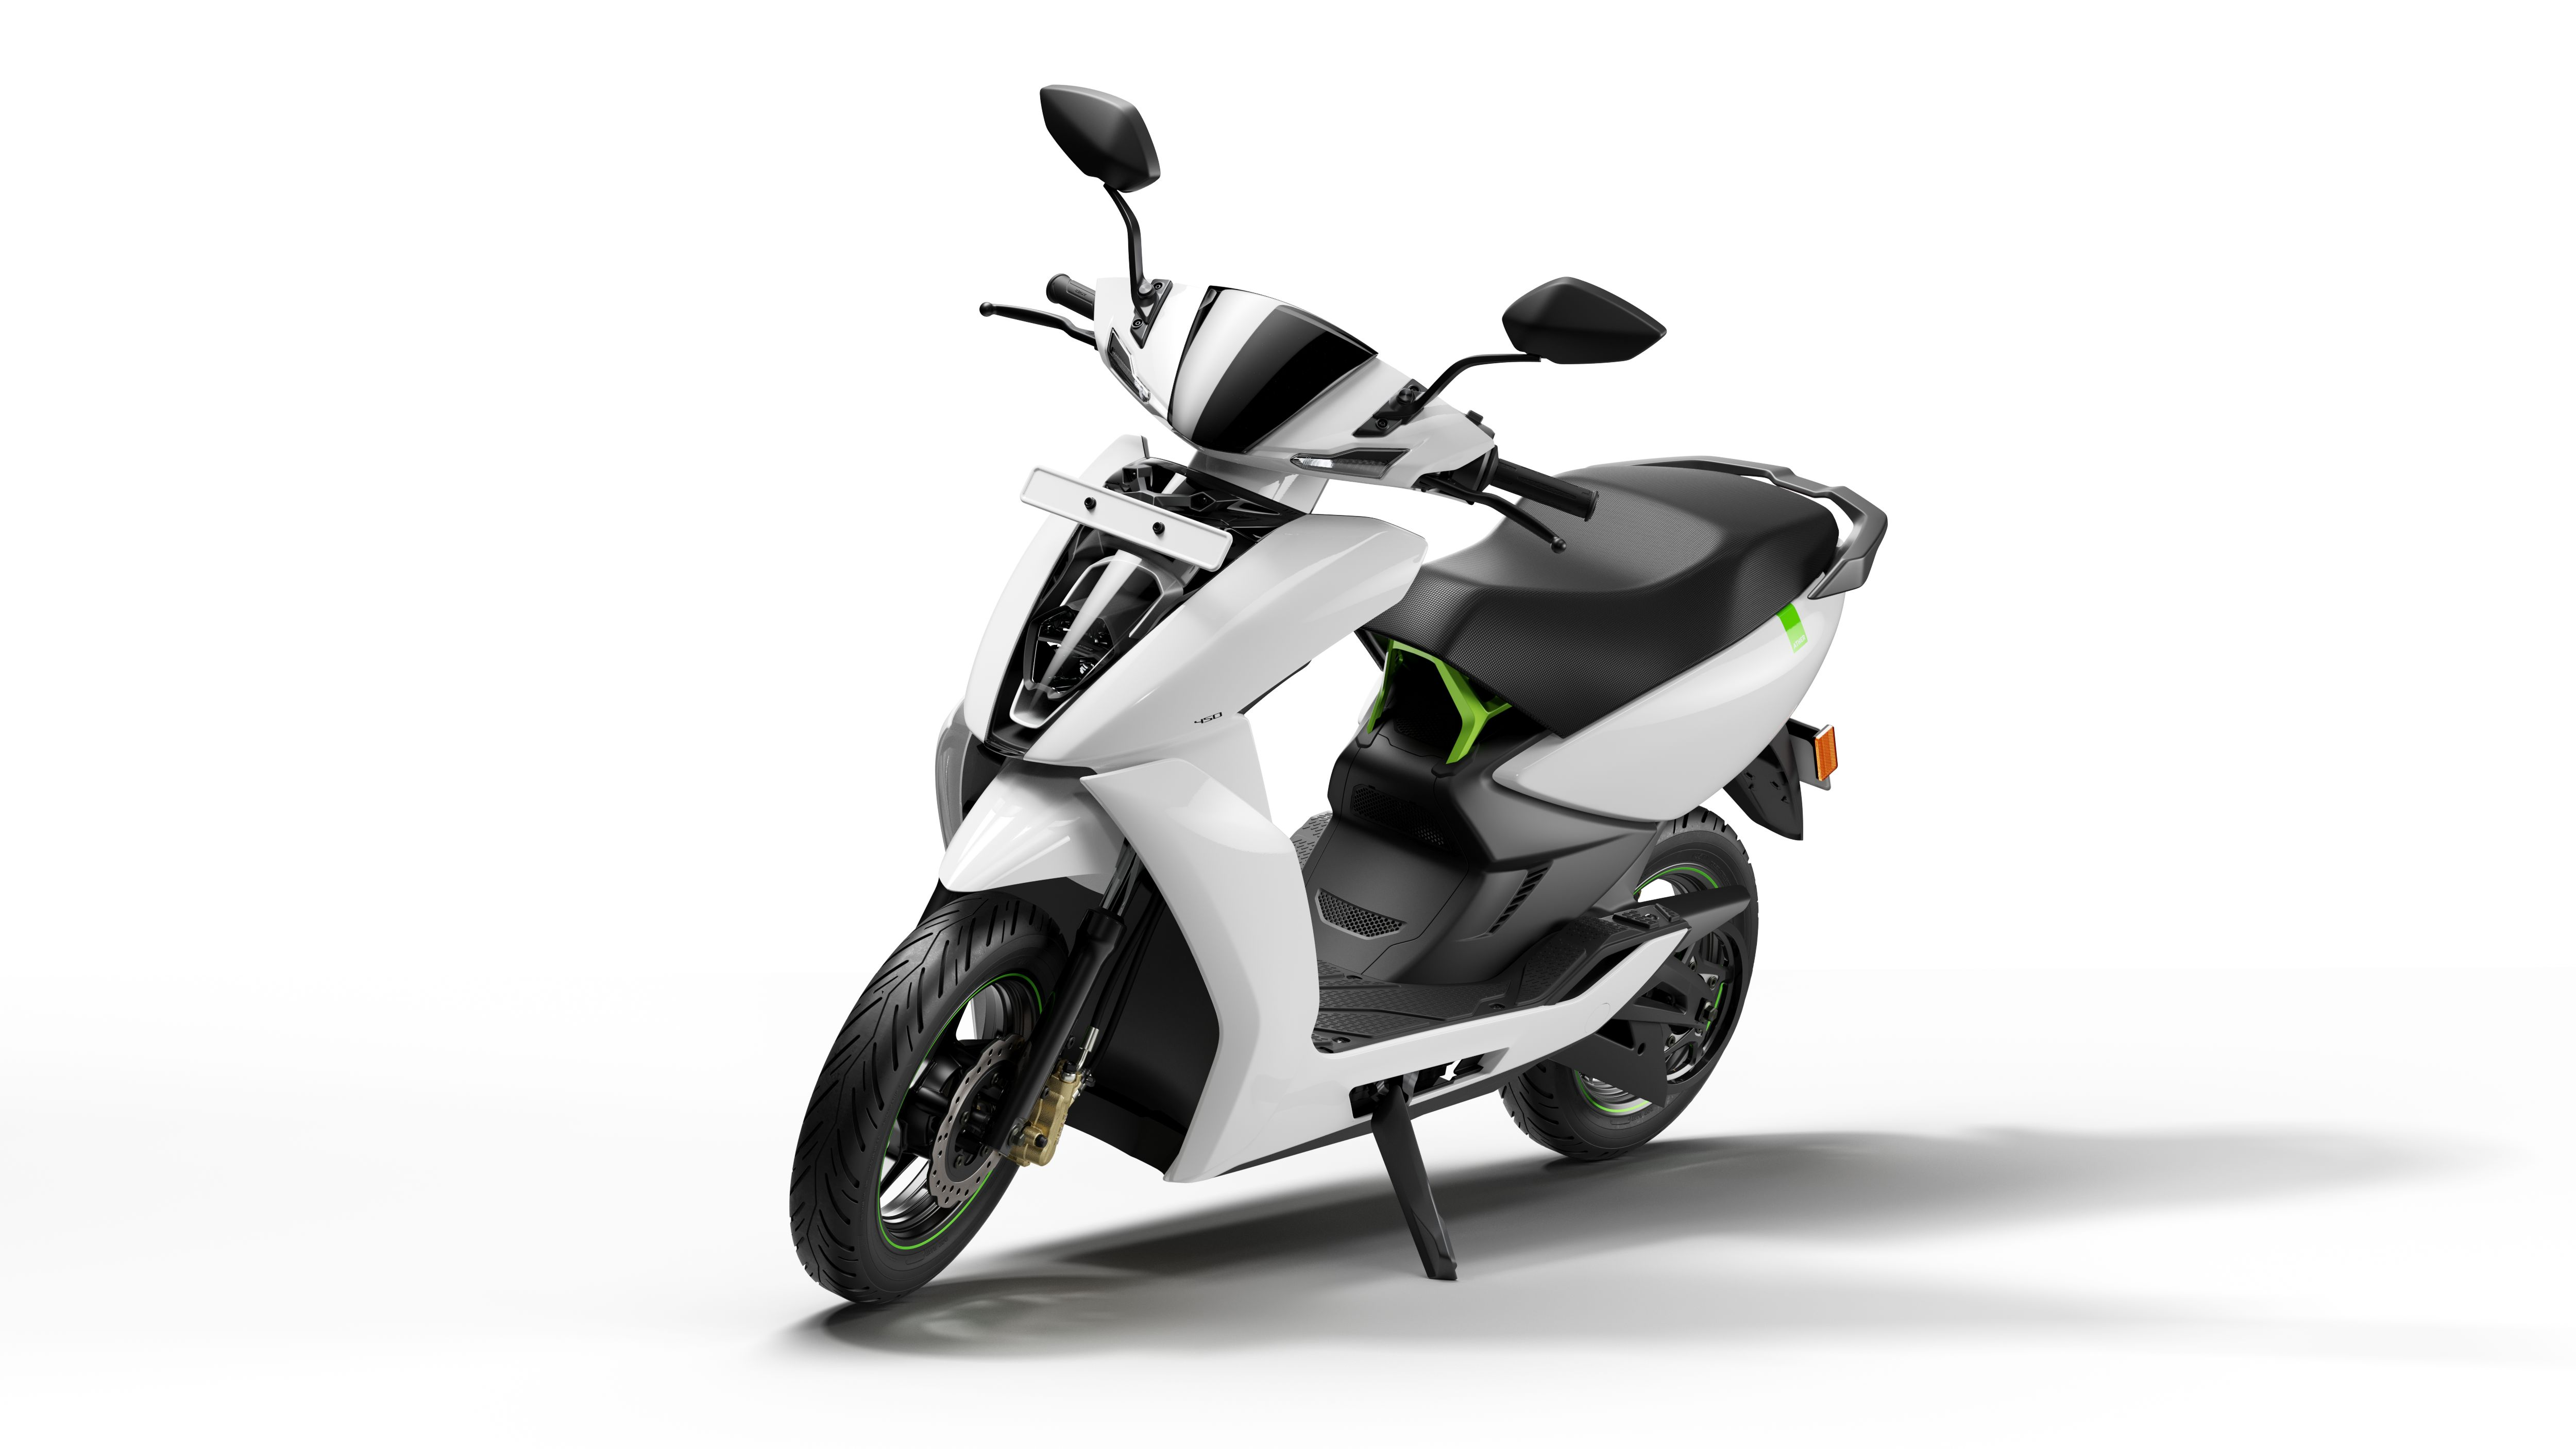 Image of Ather 450 electric scooter